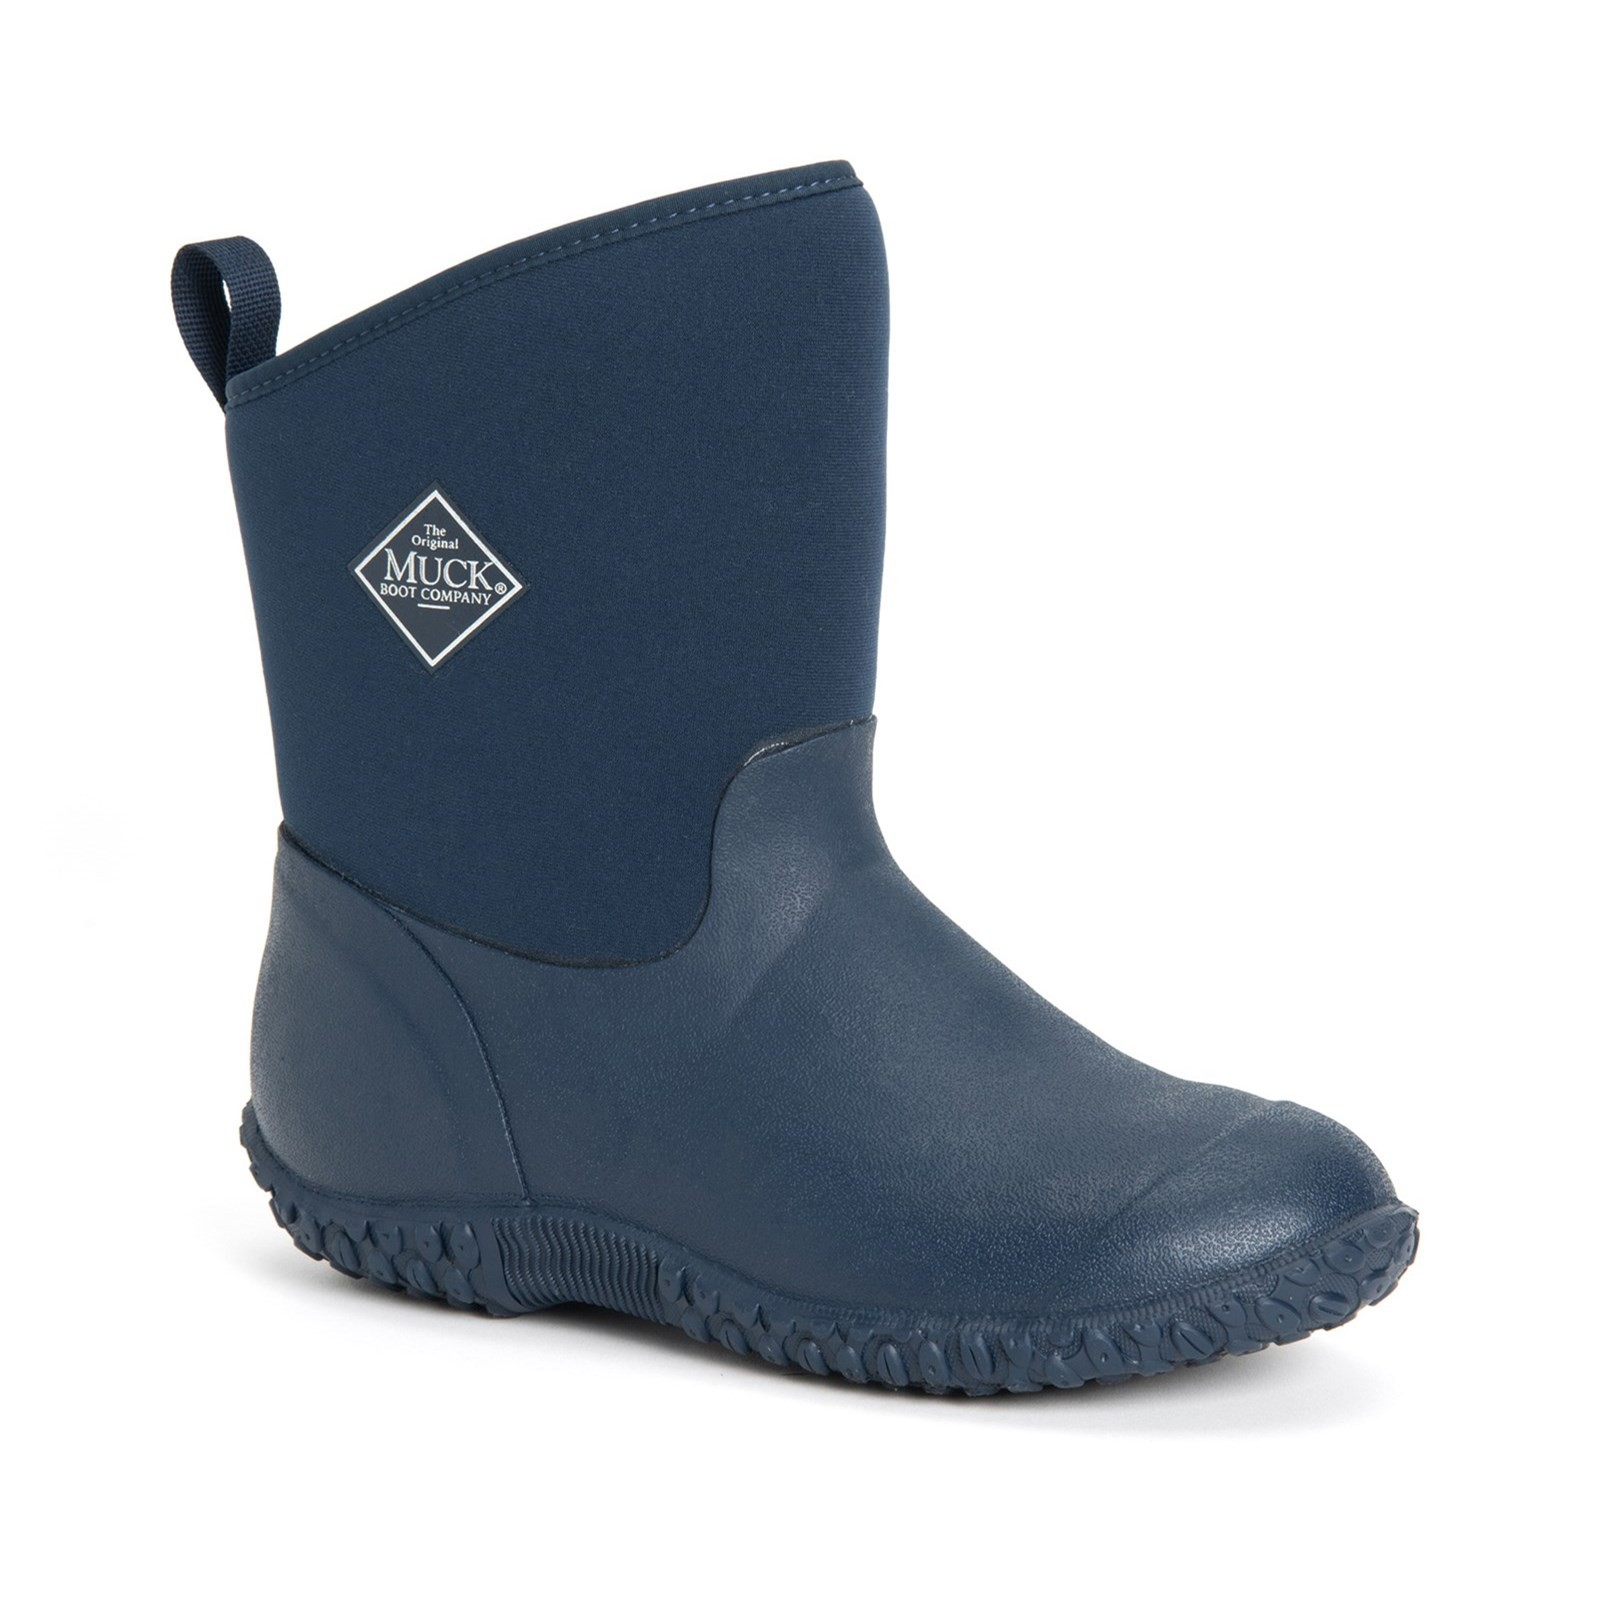 Muck Boot Muckster II Mid Shearling Size 7 UK